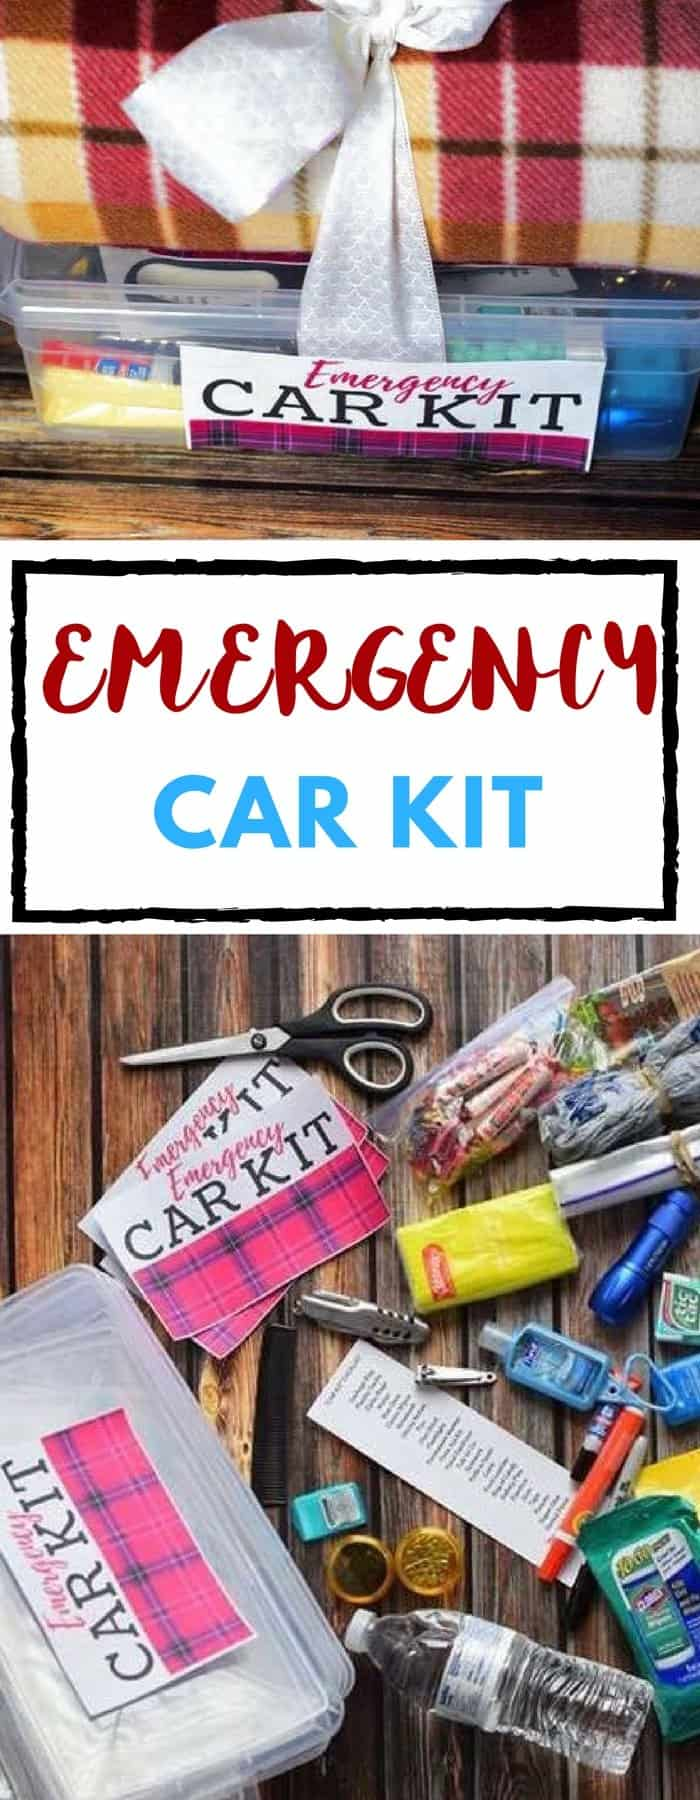 Emergency car kit, with a list of almost everything you could think of! So helpful